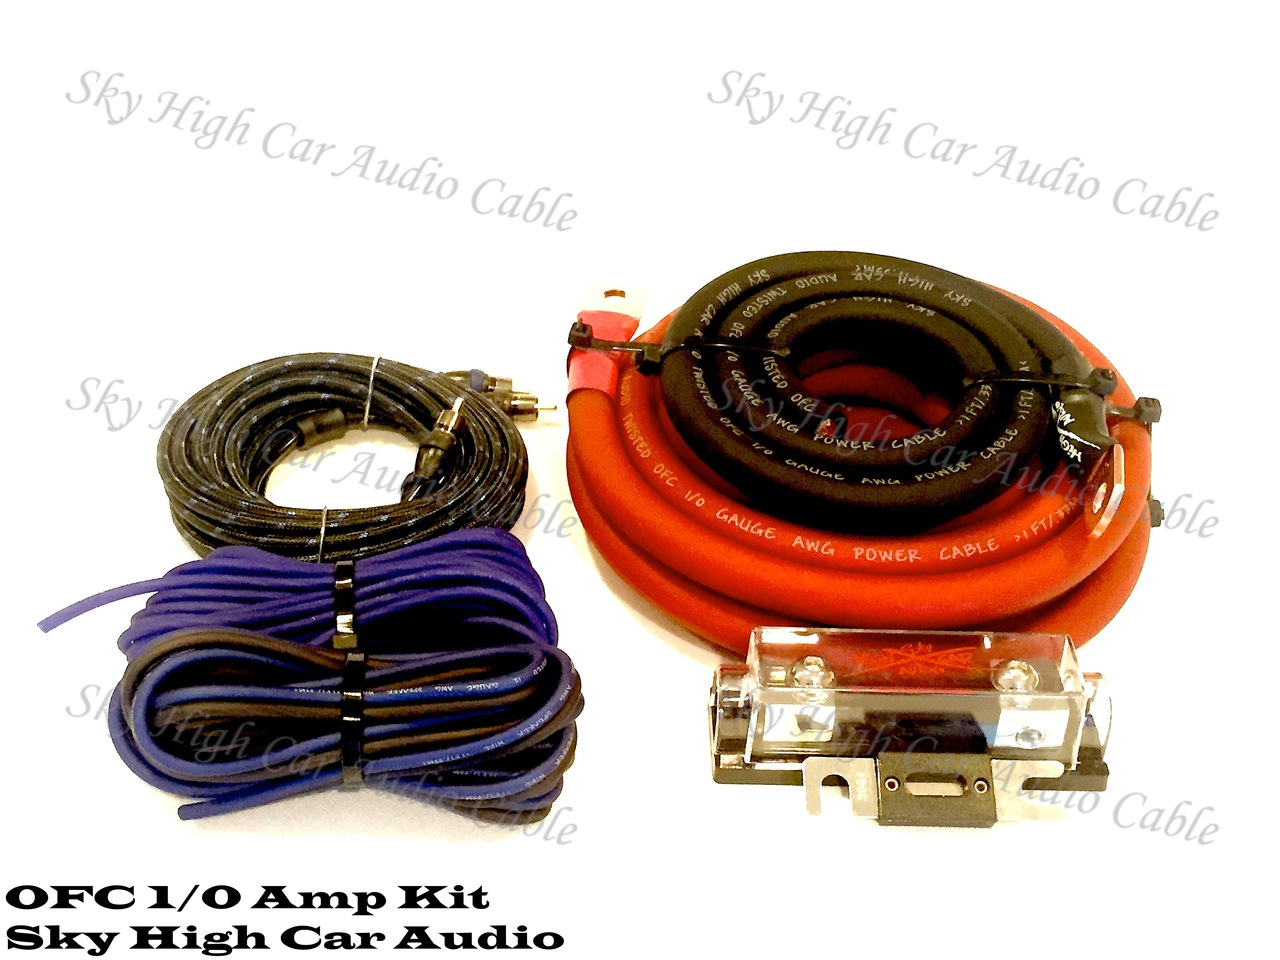 Sky High Car Audio 1 0 Ofc Amp Kit Installation Wiring Kits